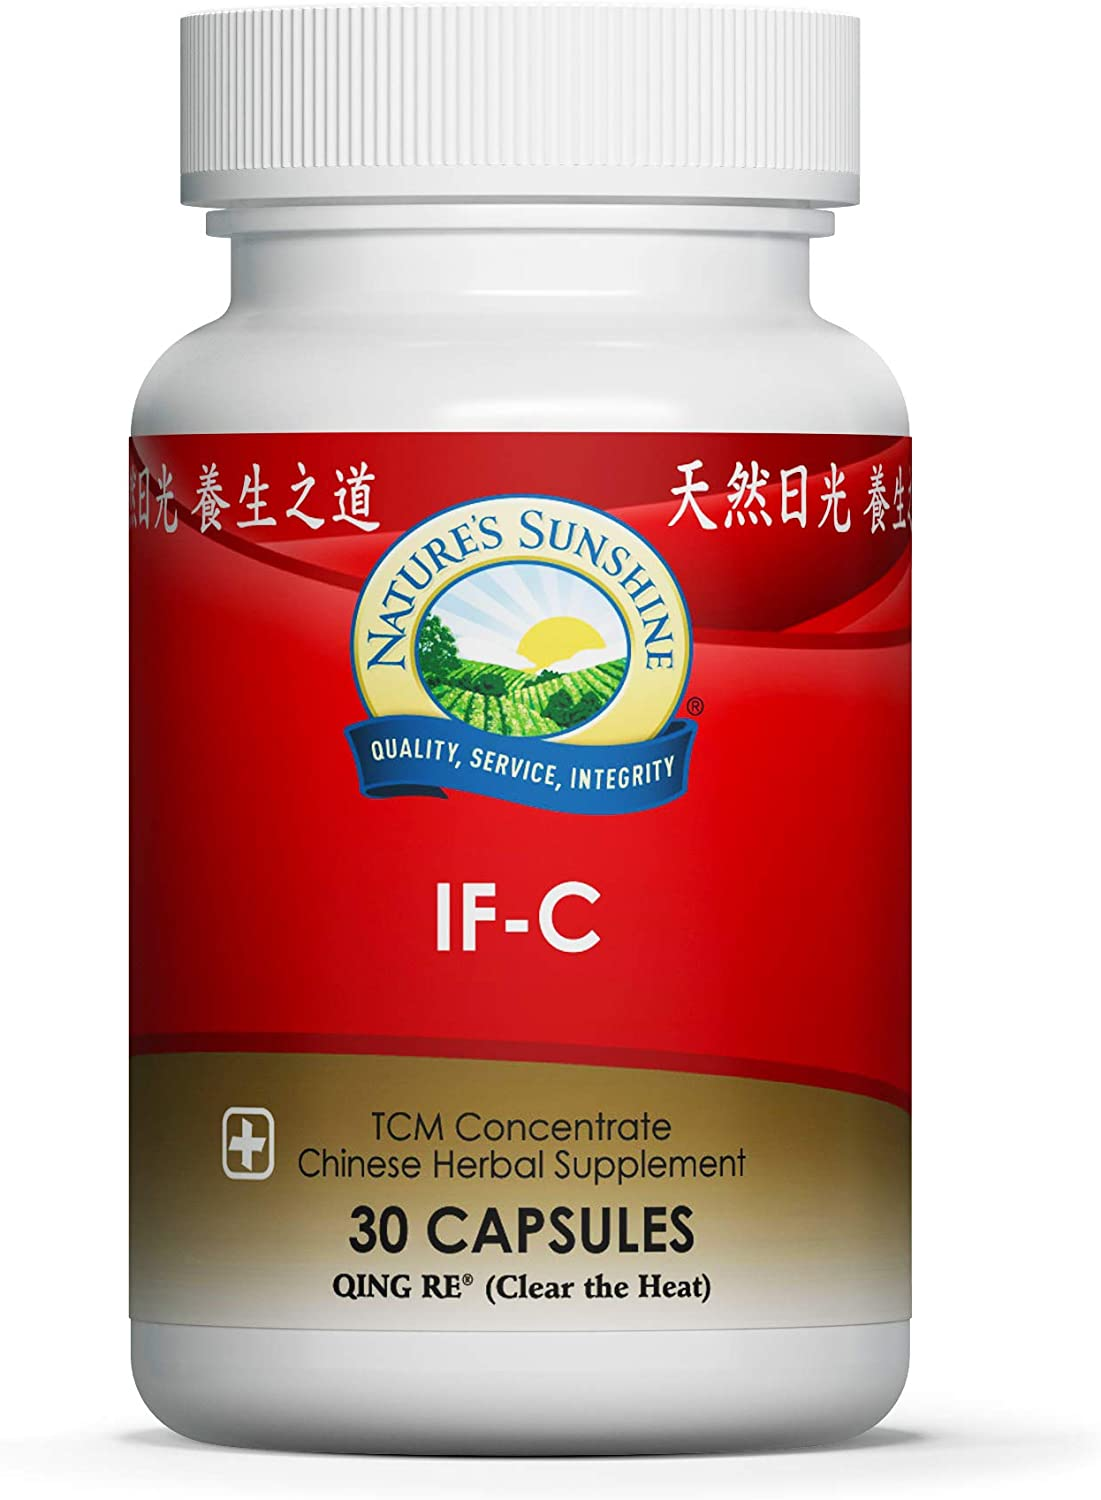 Nature's Sunshine IF-C, TCM Concentrate, 30 Capsules | Blend of Chinese Herbs That Nourish The Structural and Immune Systems by Stimulating Blood Flow and Helping to Eliminate Toxins